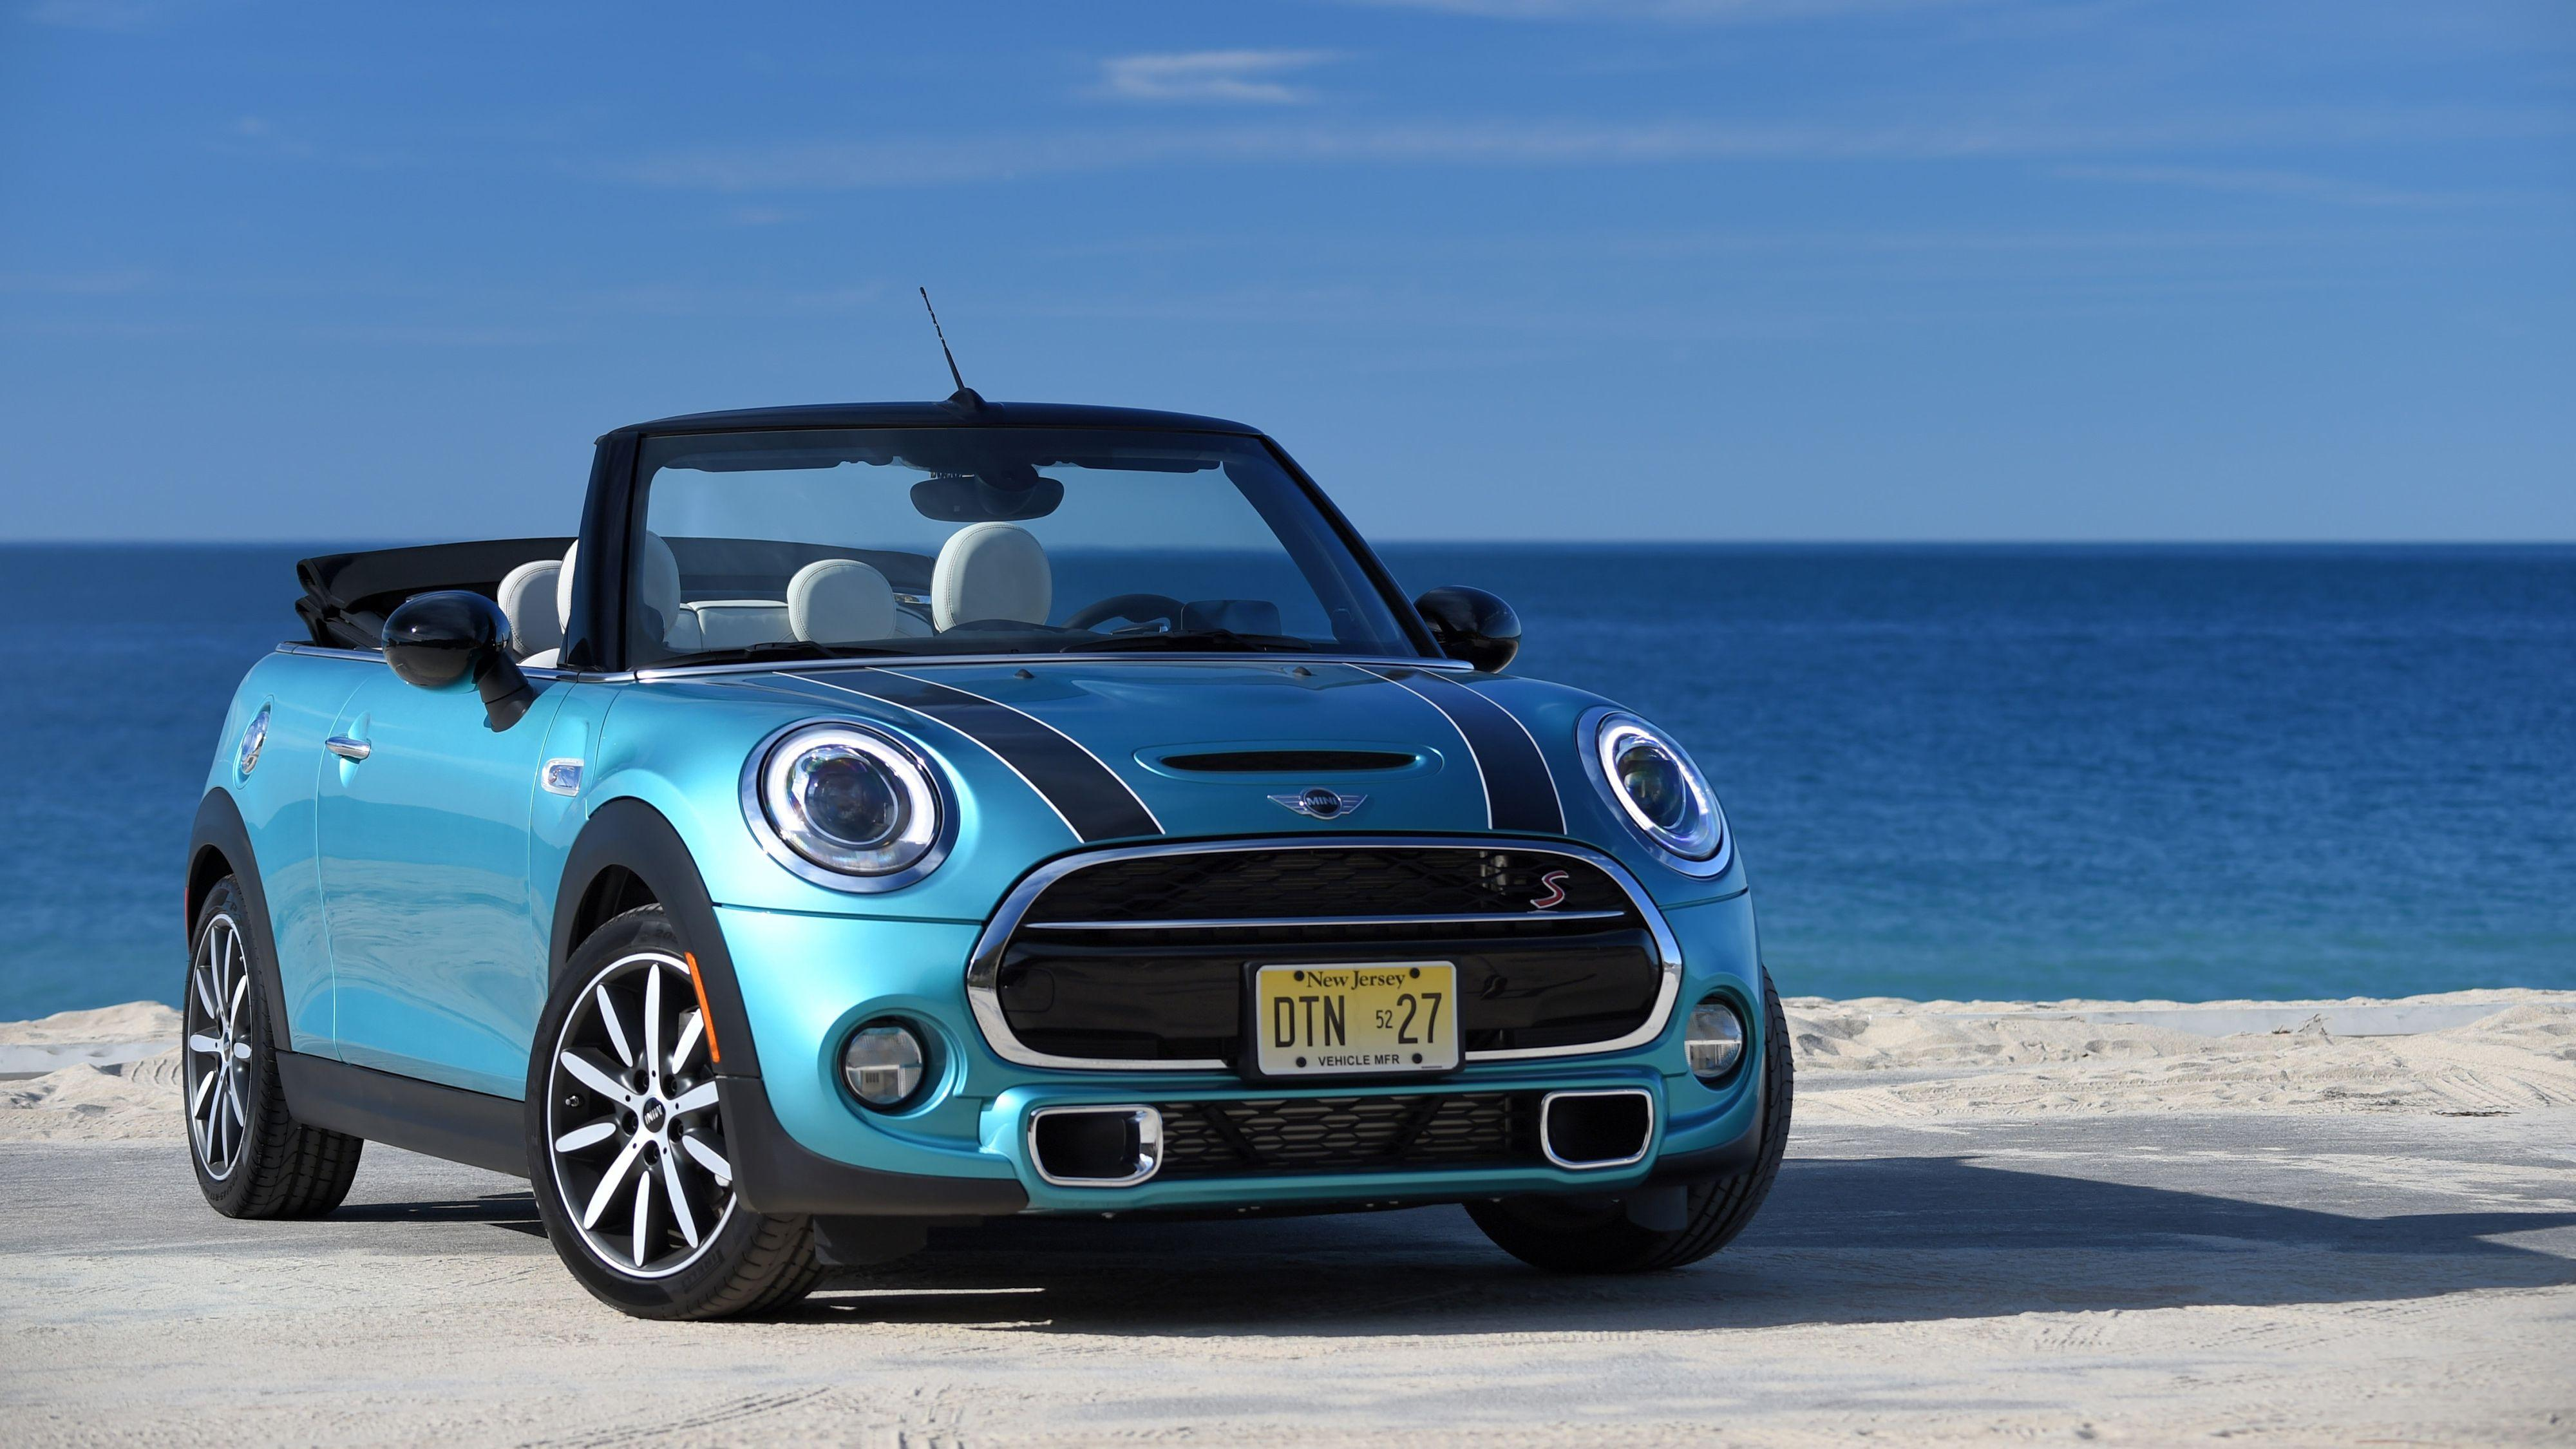 2016 Mini Cooper ConvertibleSimilar Car Wallpapers wallpapers